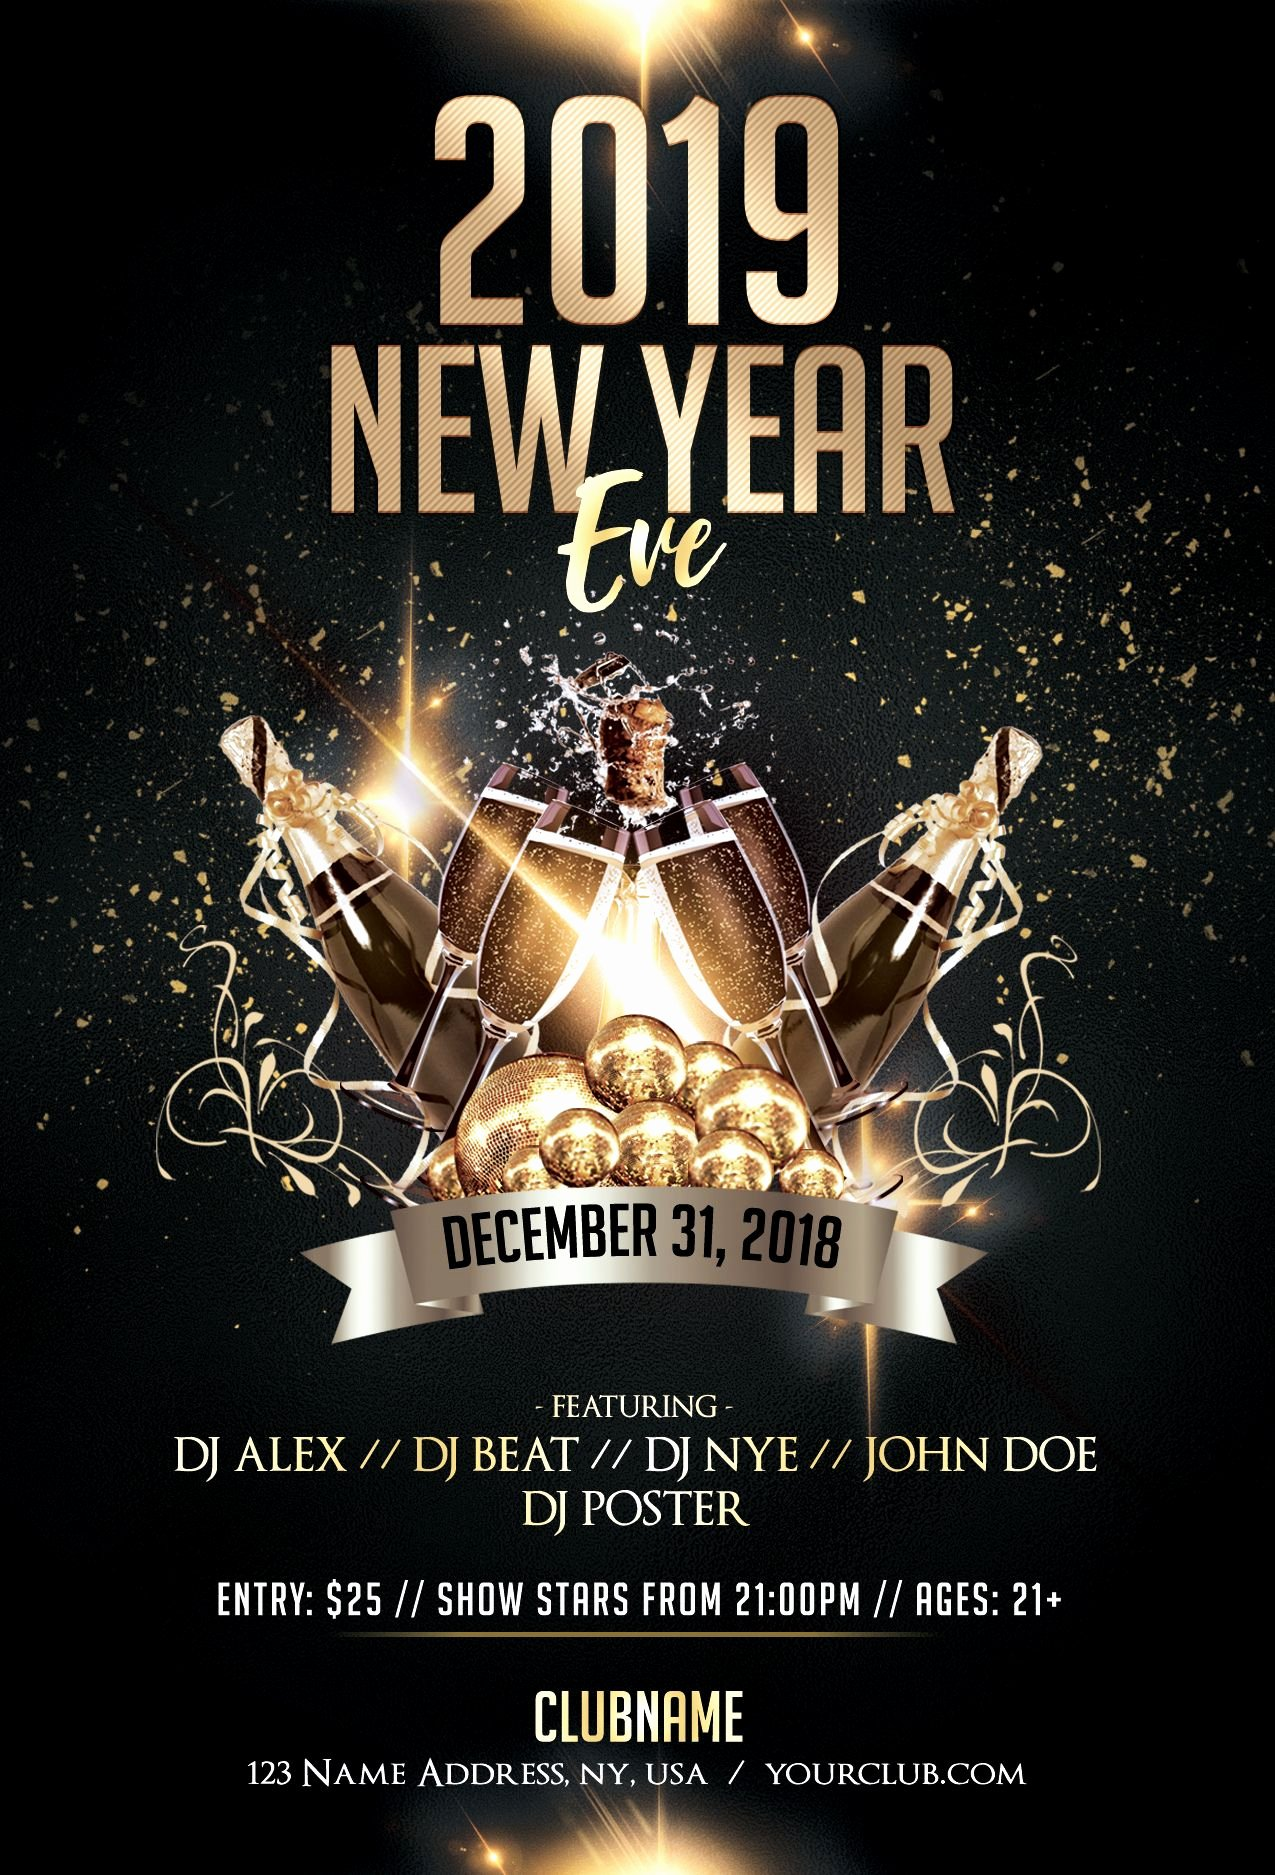 New Years Eve Flyer Awesome Download 2019 New Year Eve Psd Flyer Template for Free